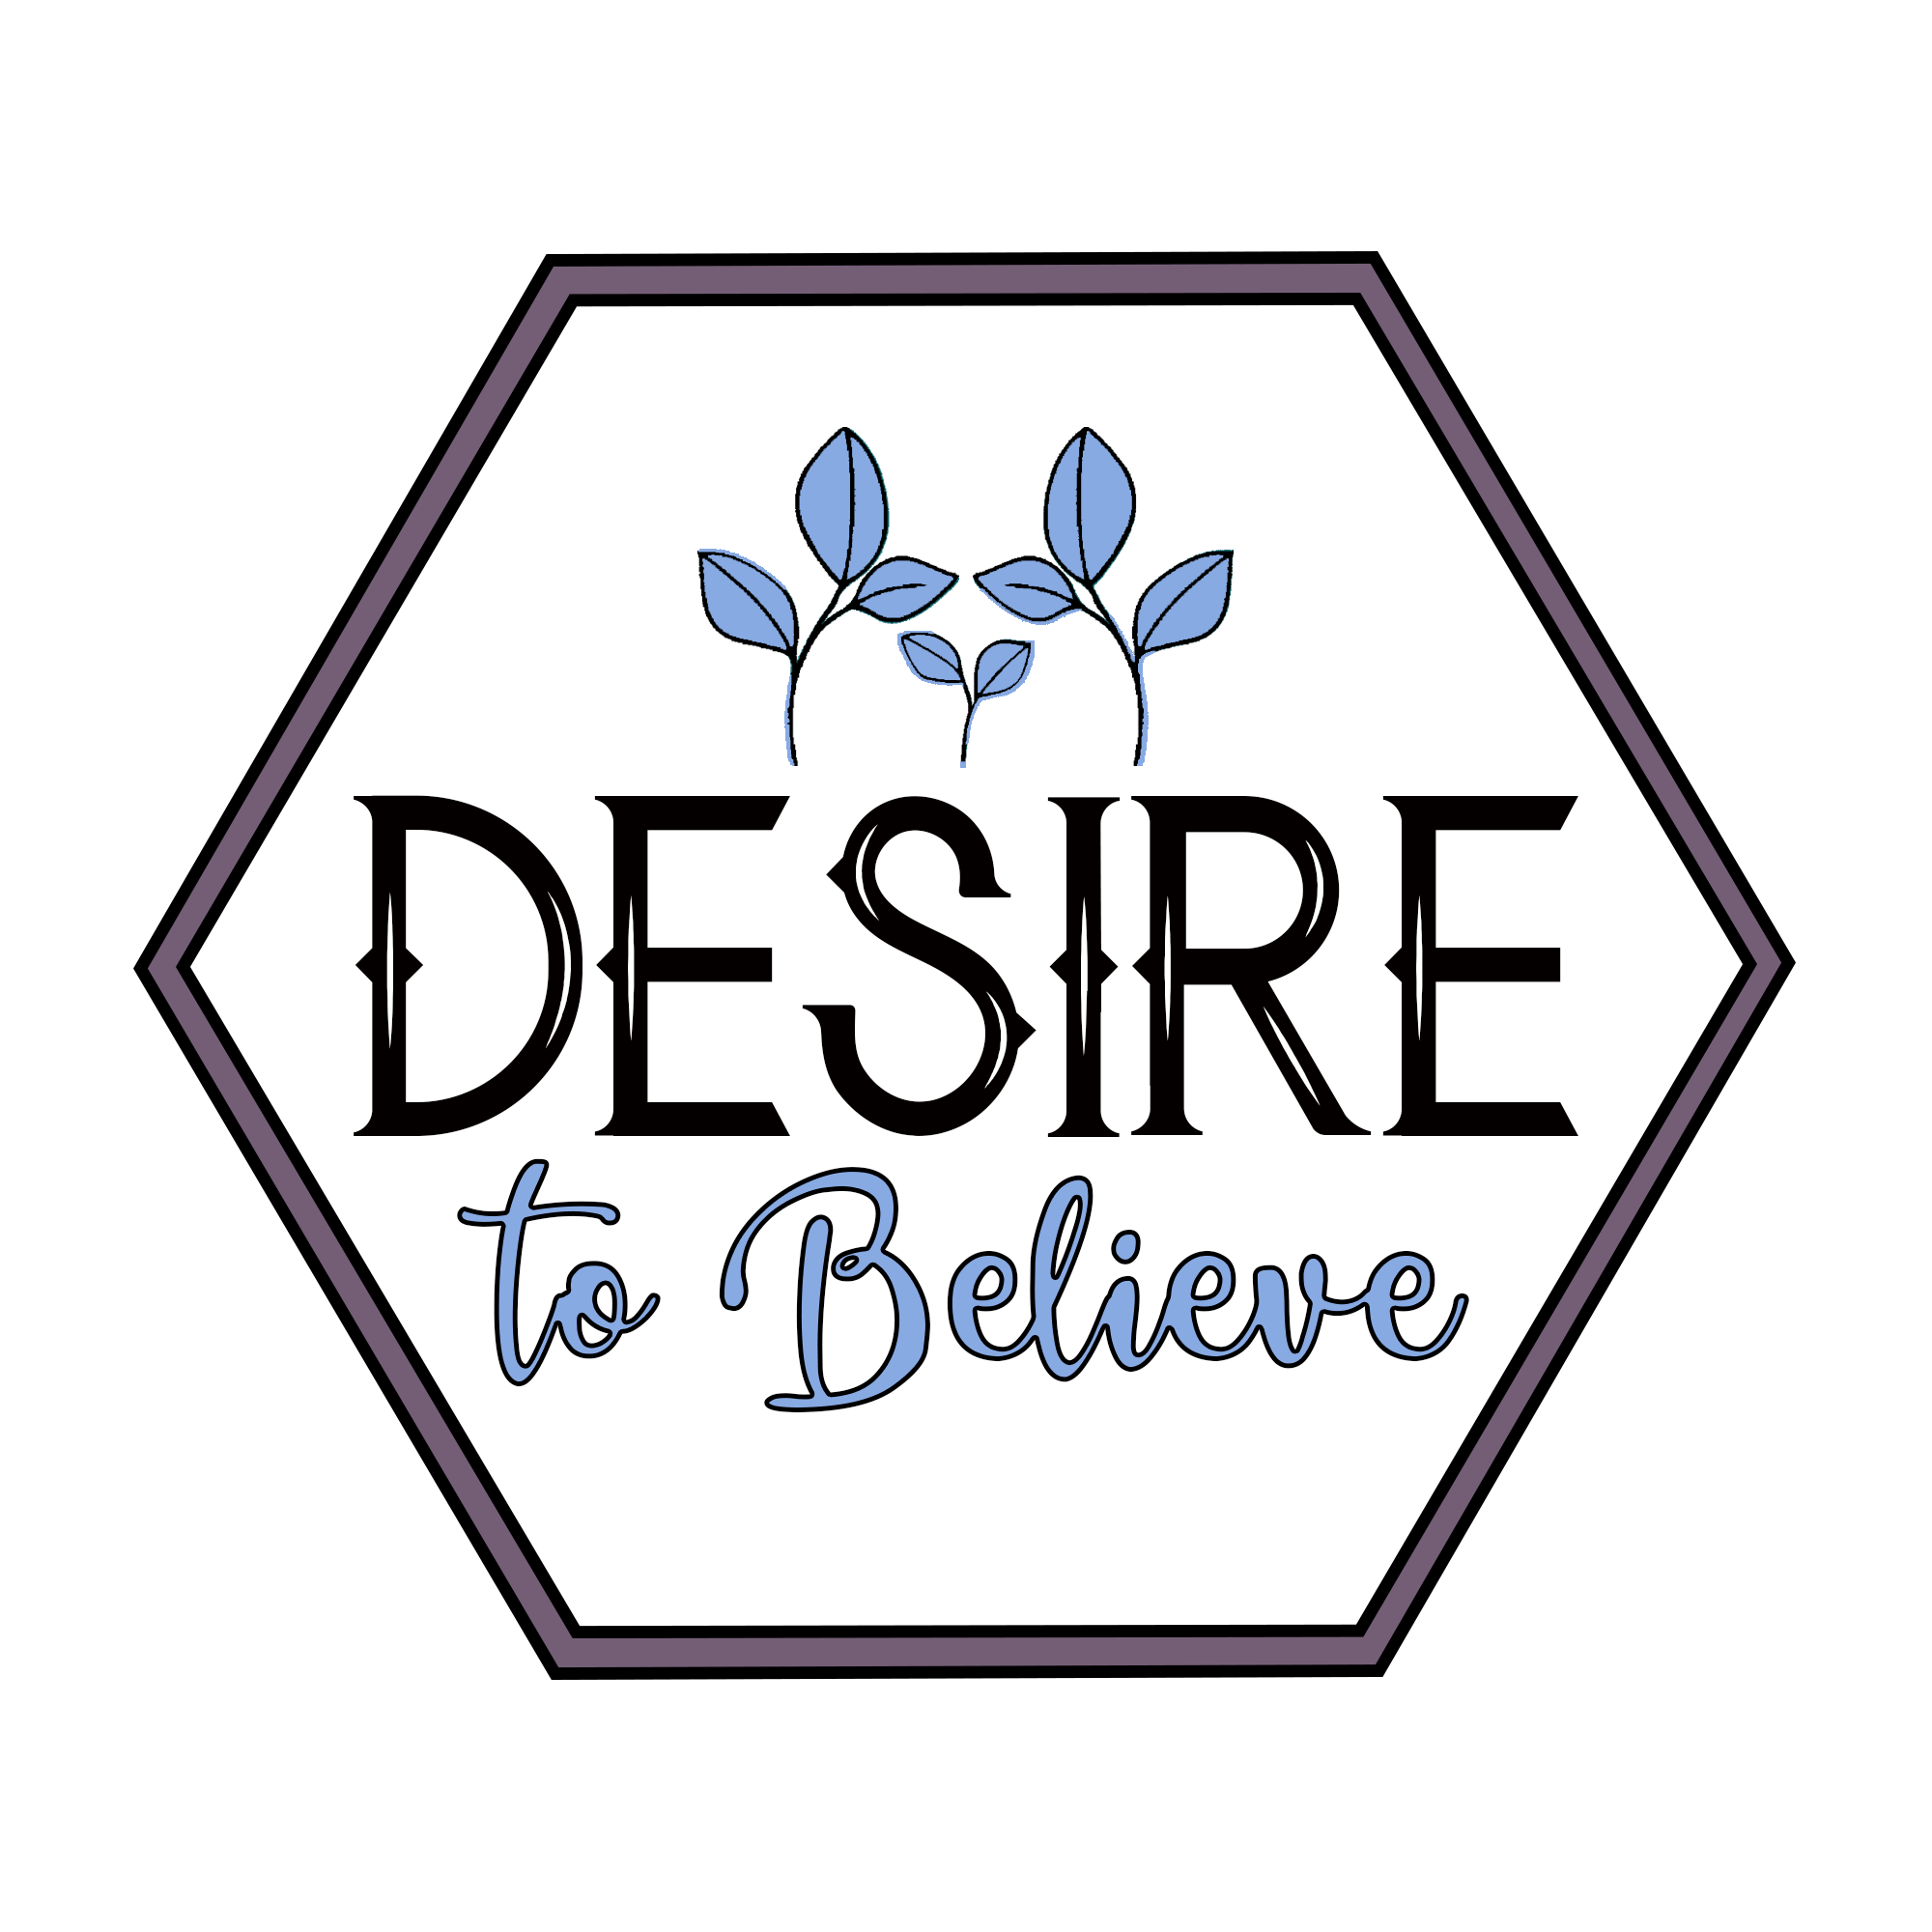 Desire to Believe